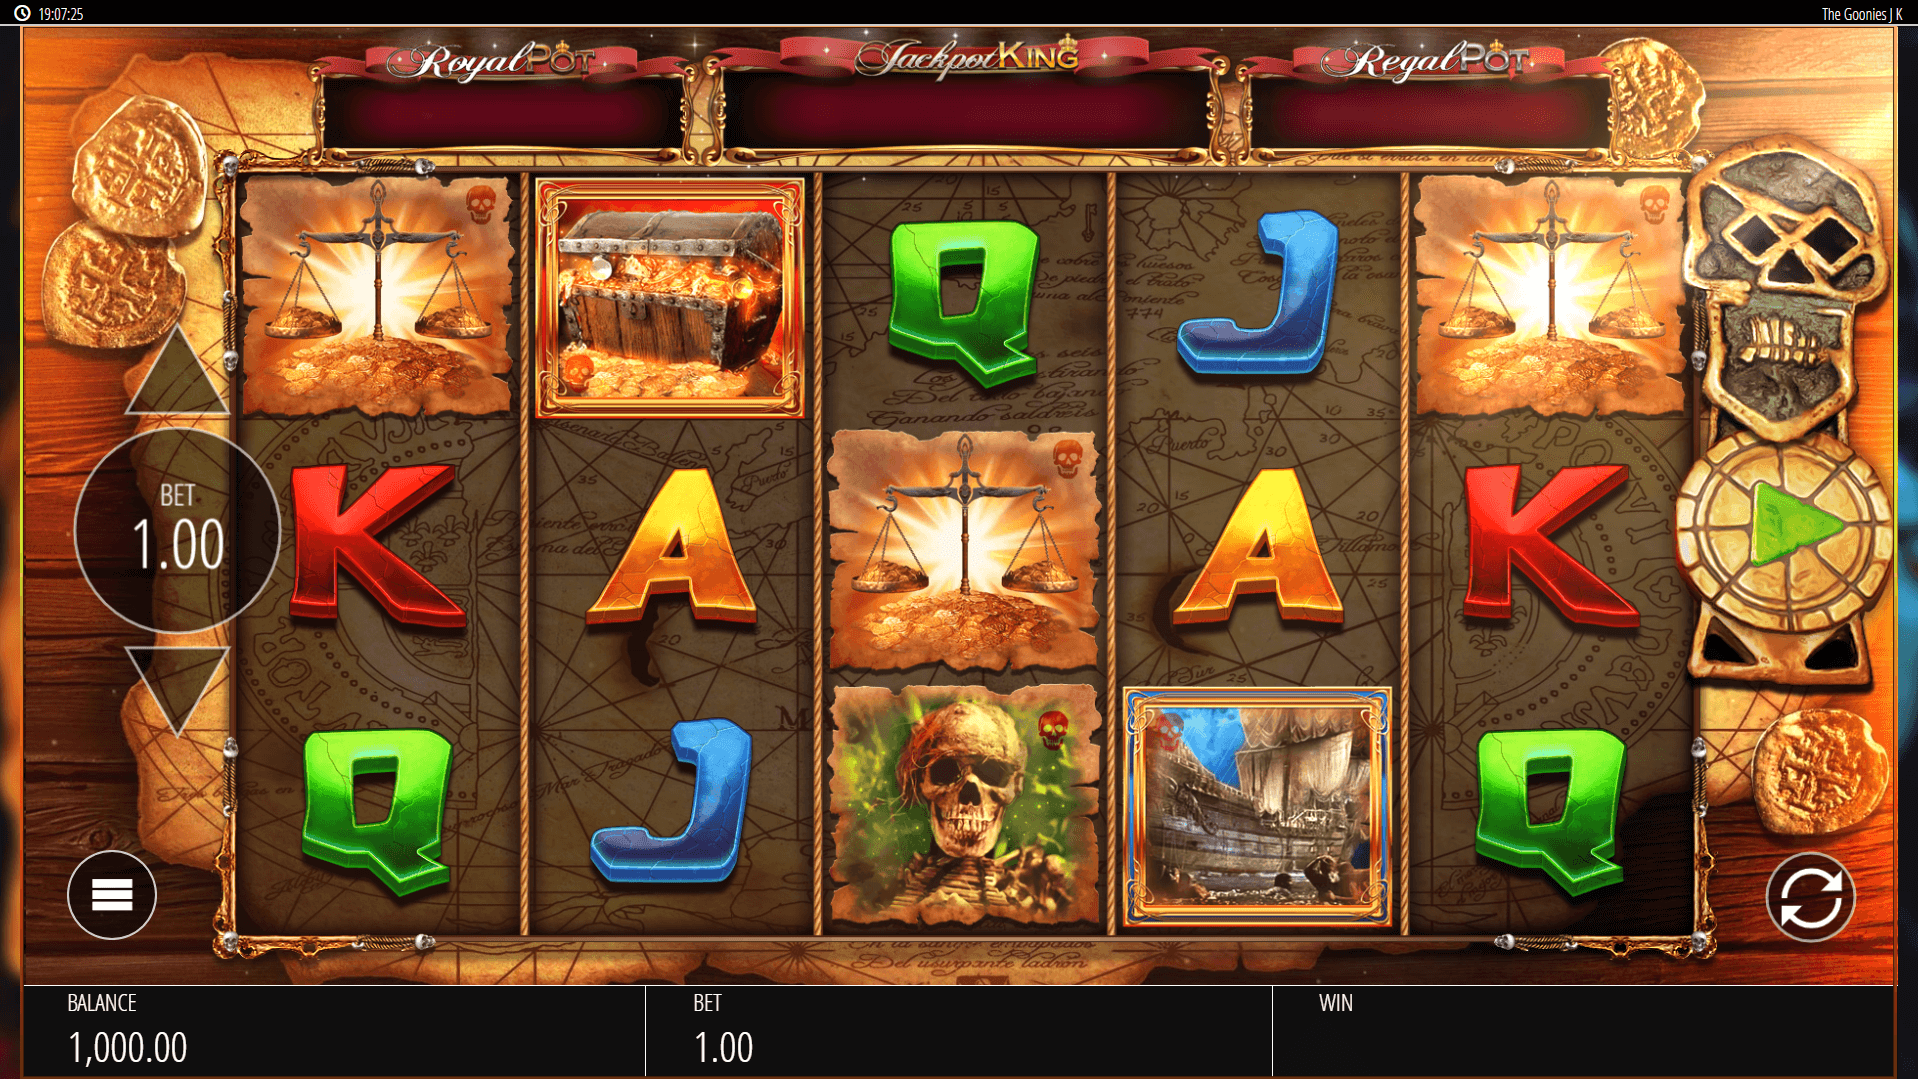 The Goonies Jackpot King slot machine screenshot